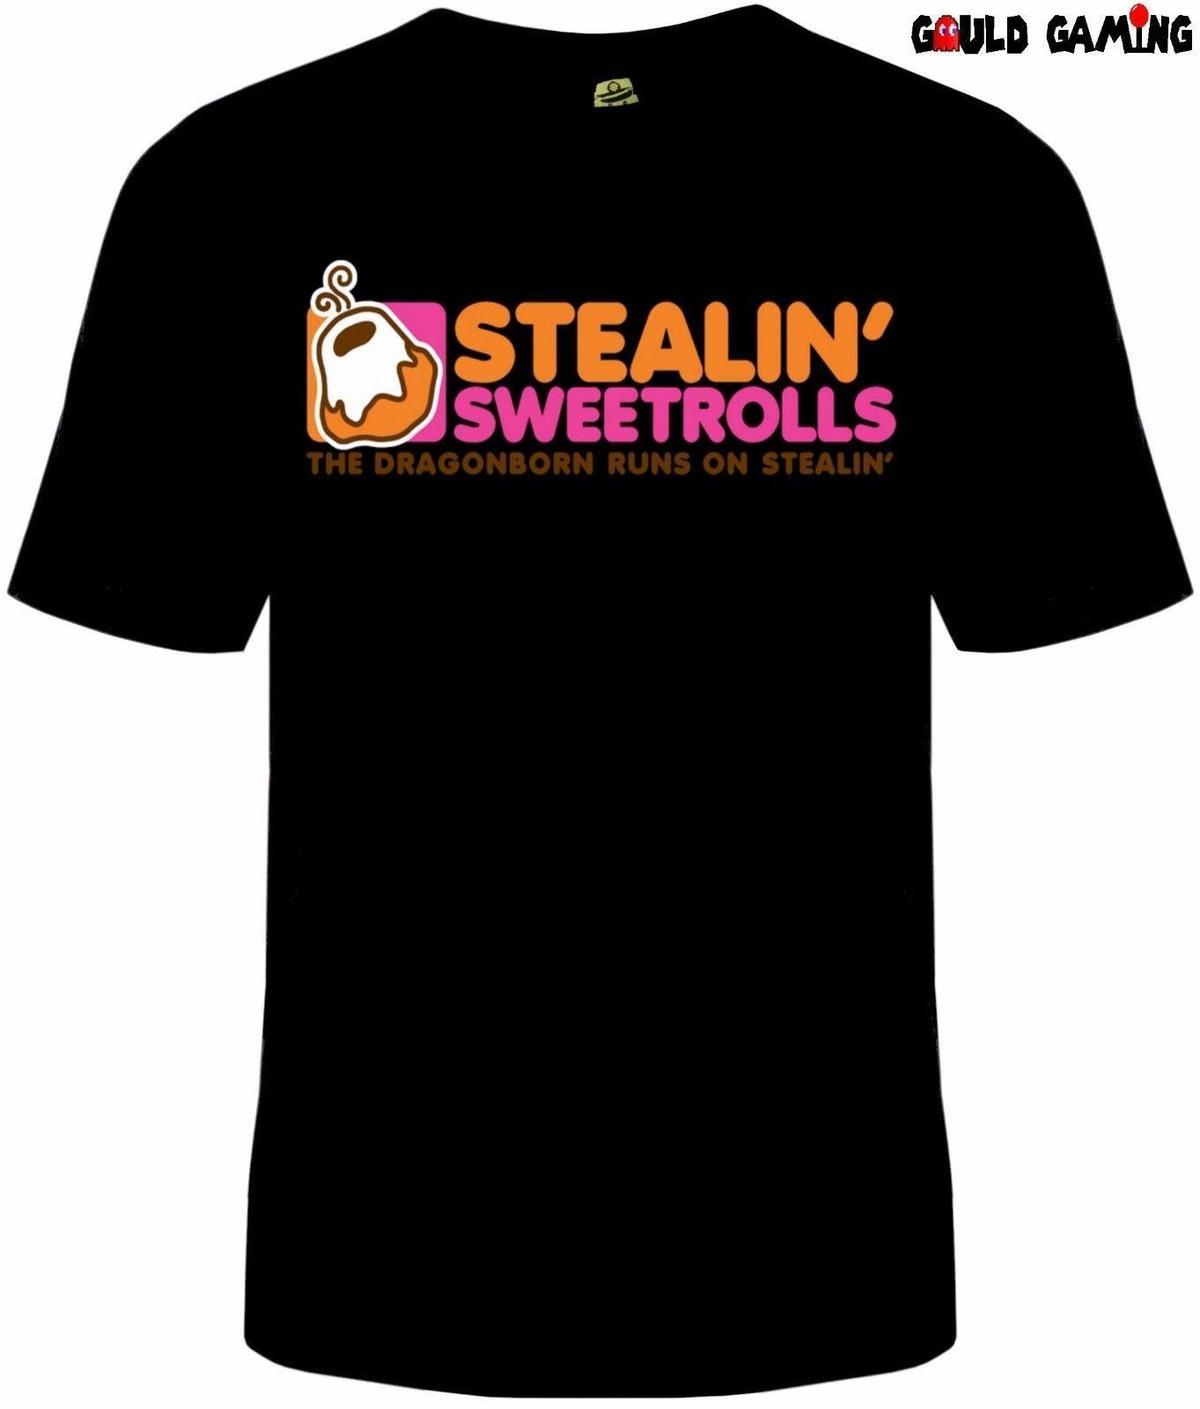 6076451d Skyrim Stealing Sweetrolls T Shirt Unisex Dragonborn Dunkin Donuts Sizes  New Funny T Shirts Online Hilarious T Shirts From Amesion06ljl, $12.08|  DHgate.Com